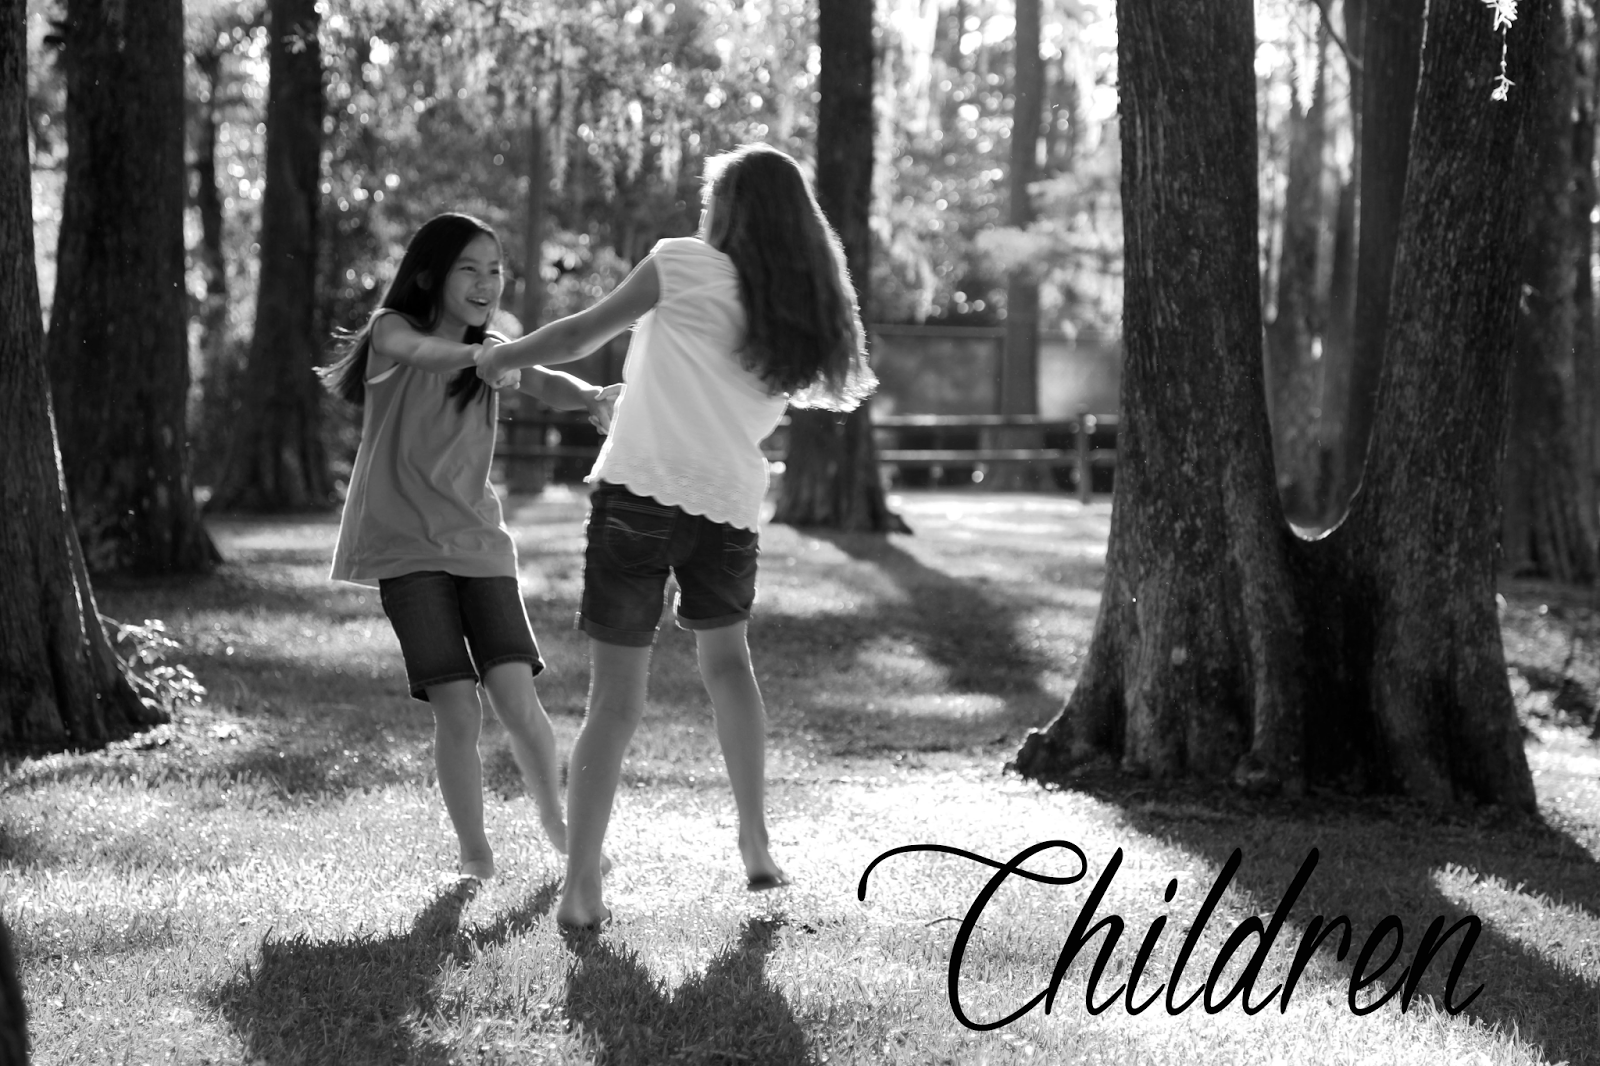 http://haleynicolephoto.blogspot.com/search/label/children